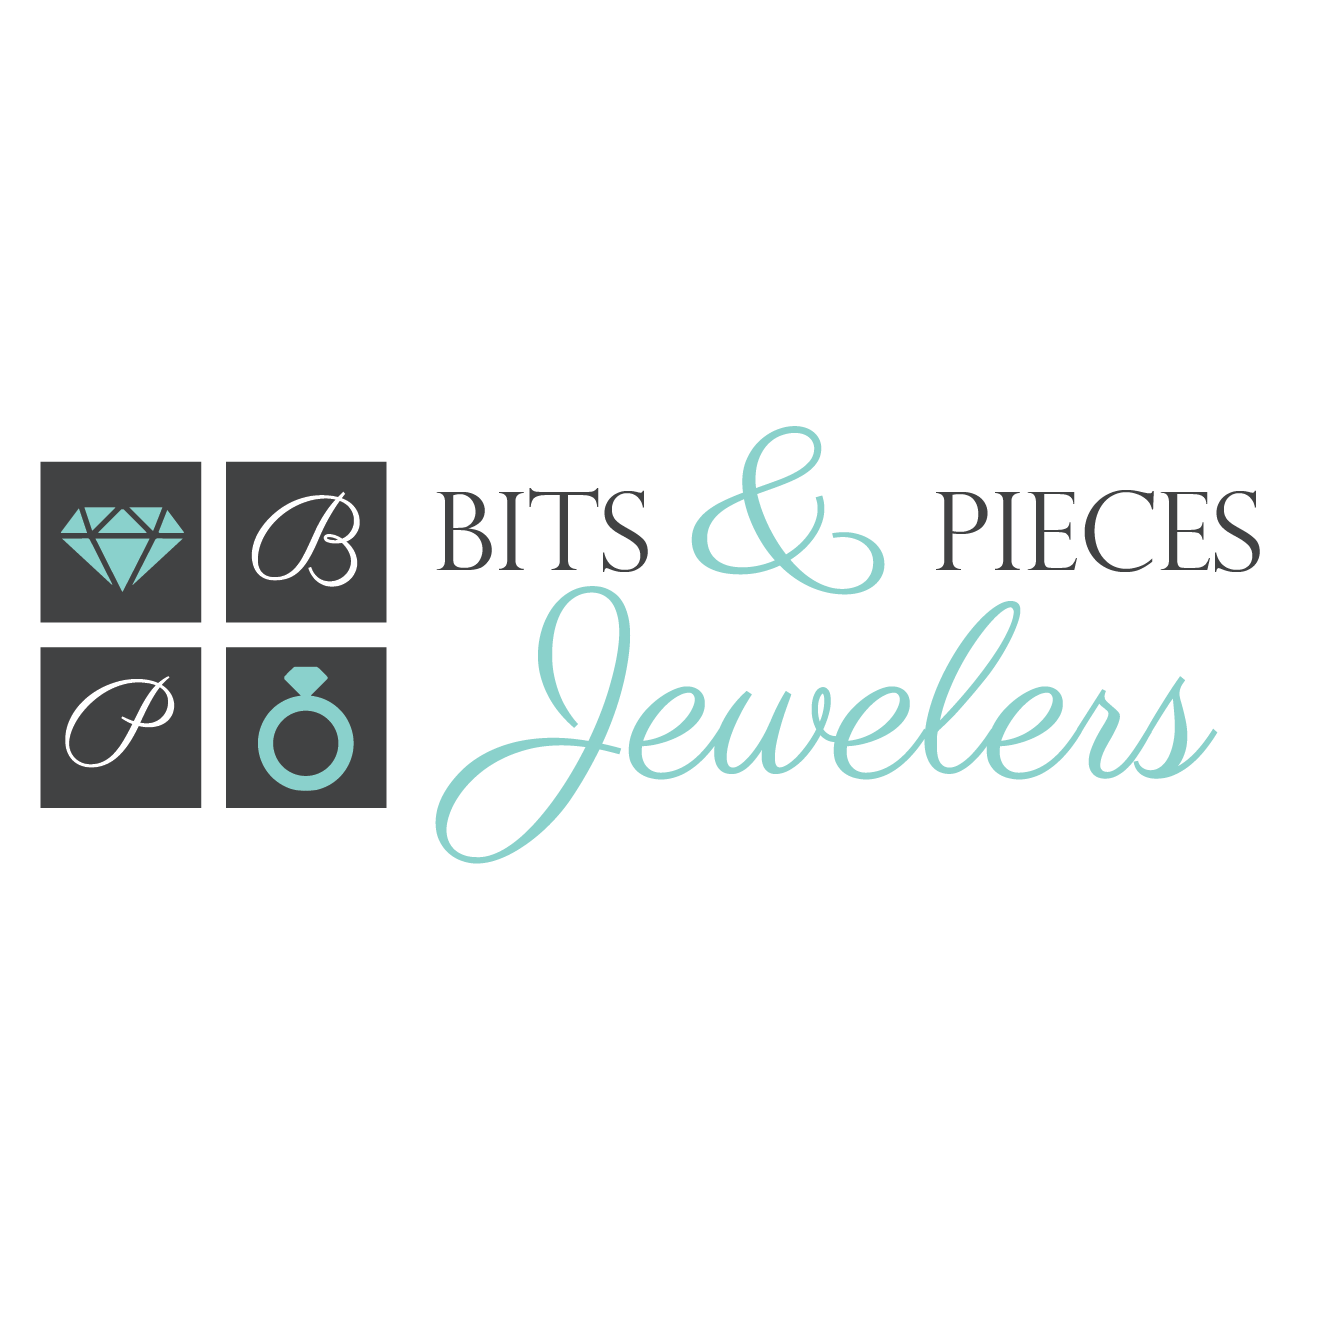 Bits & Pieces Jewelers image 0